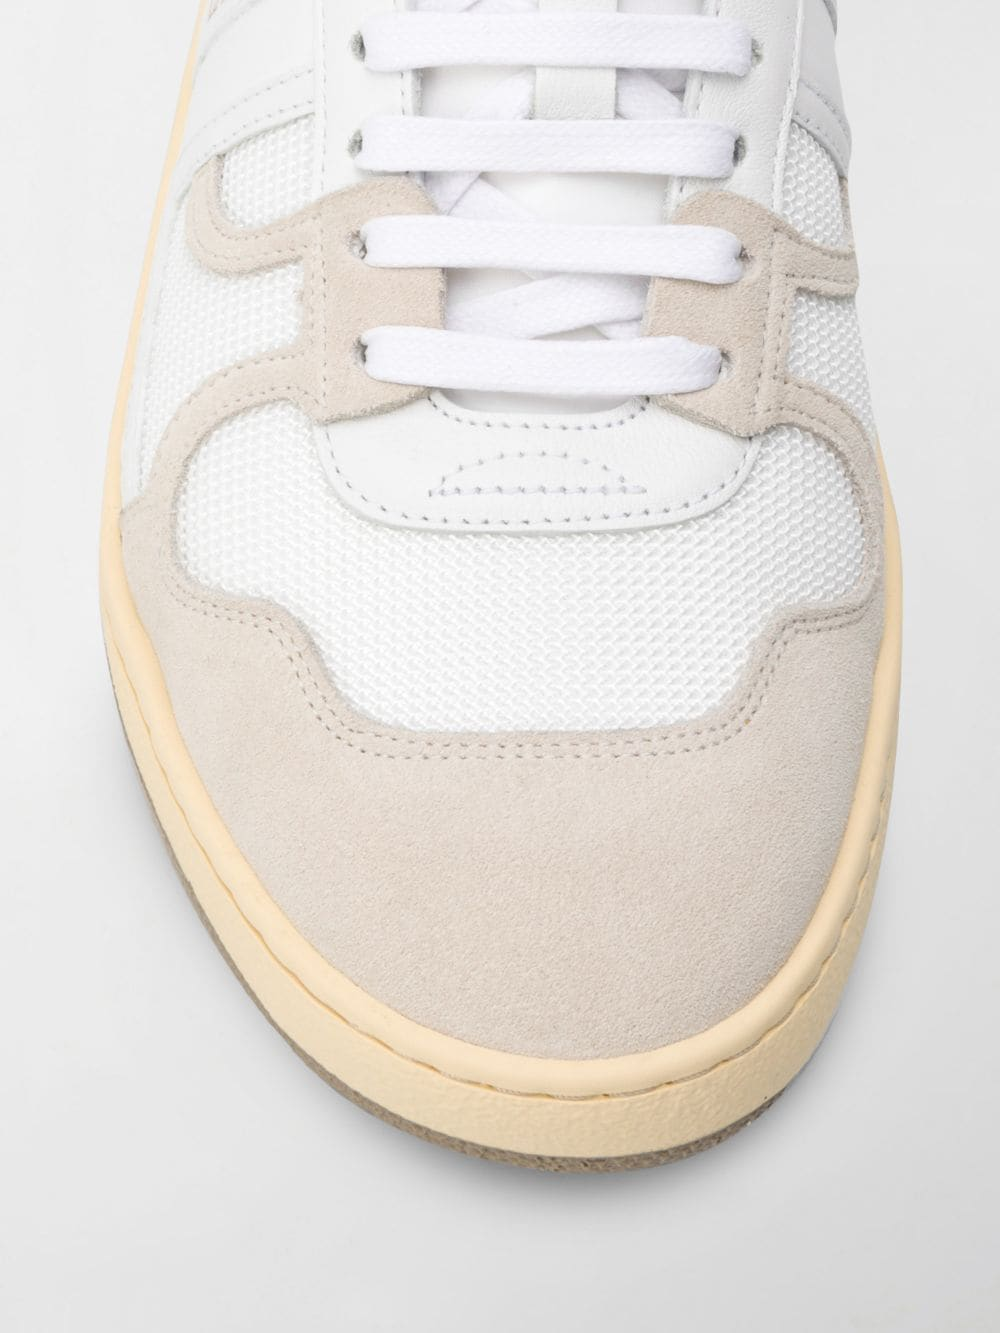 clay sneakers man white in leather LANVIN | Sneakers | FM-SKDK00-NASH-A2000